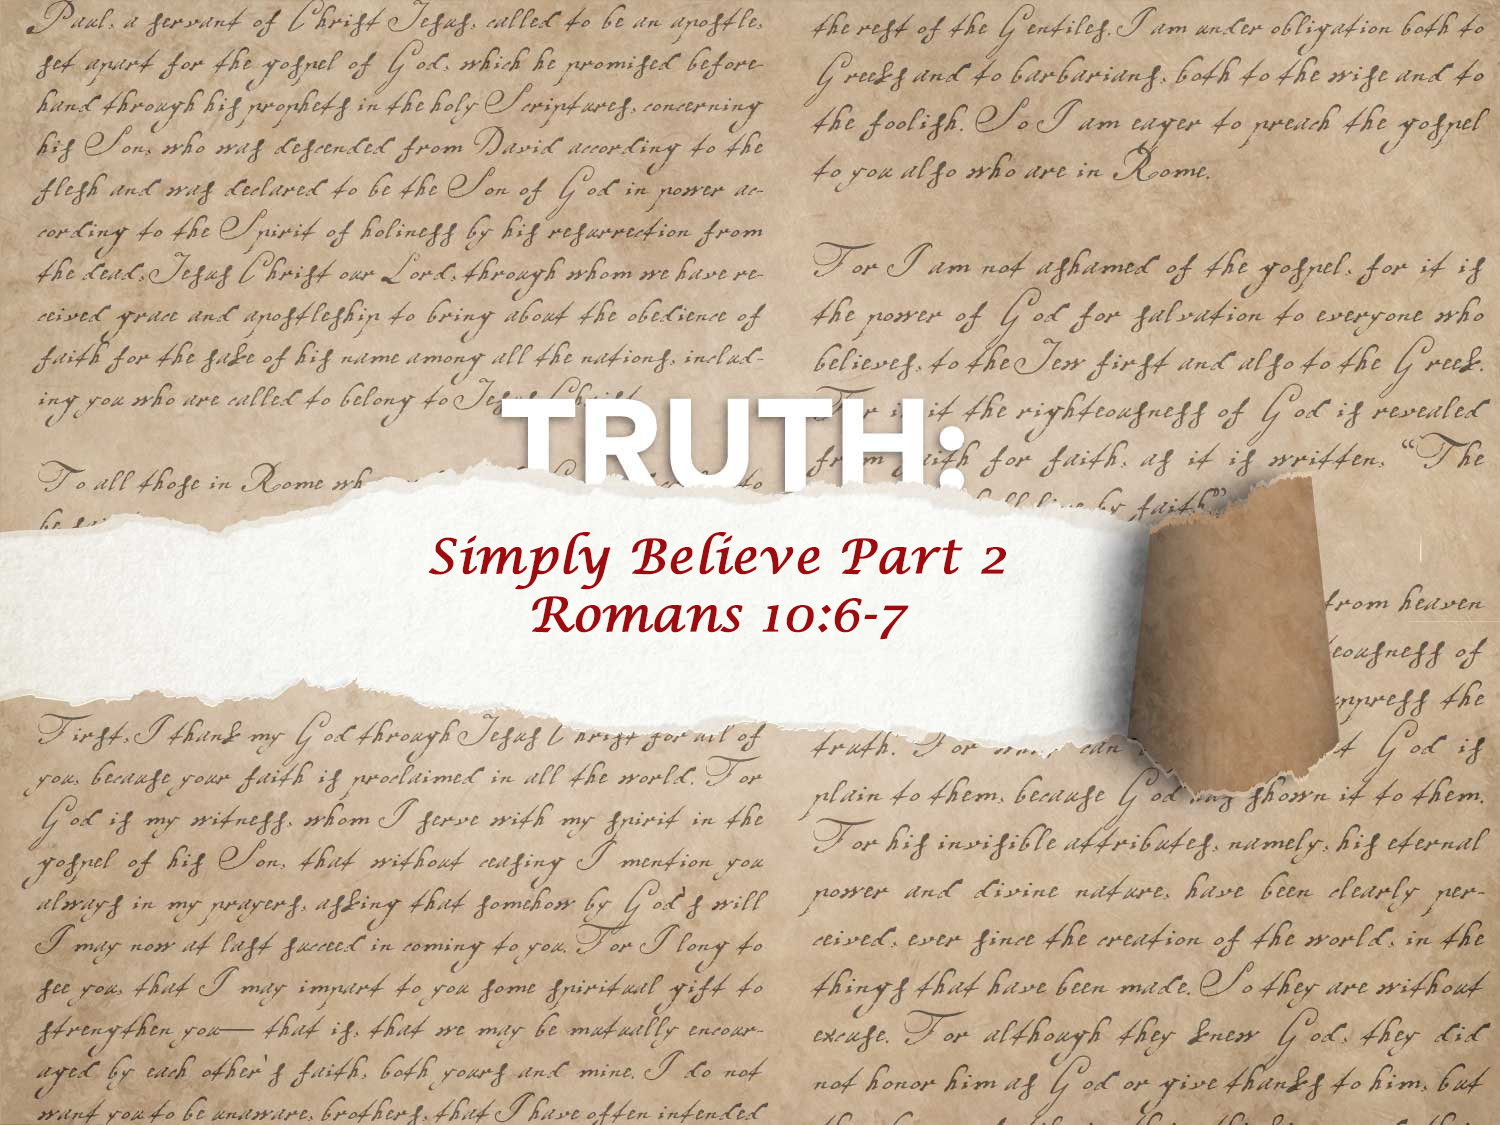 Romans 10:6-7 Simply Believe – A Warning Against Searching For Signs And Wonders